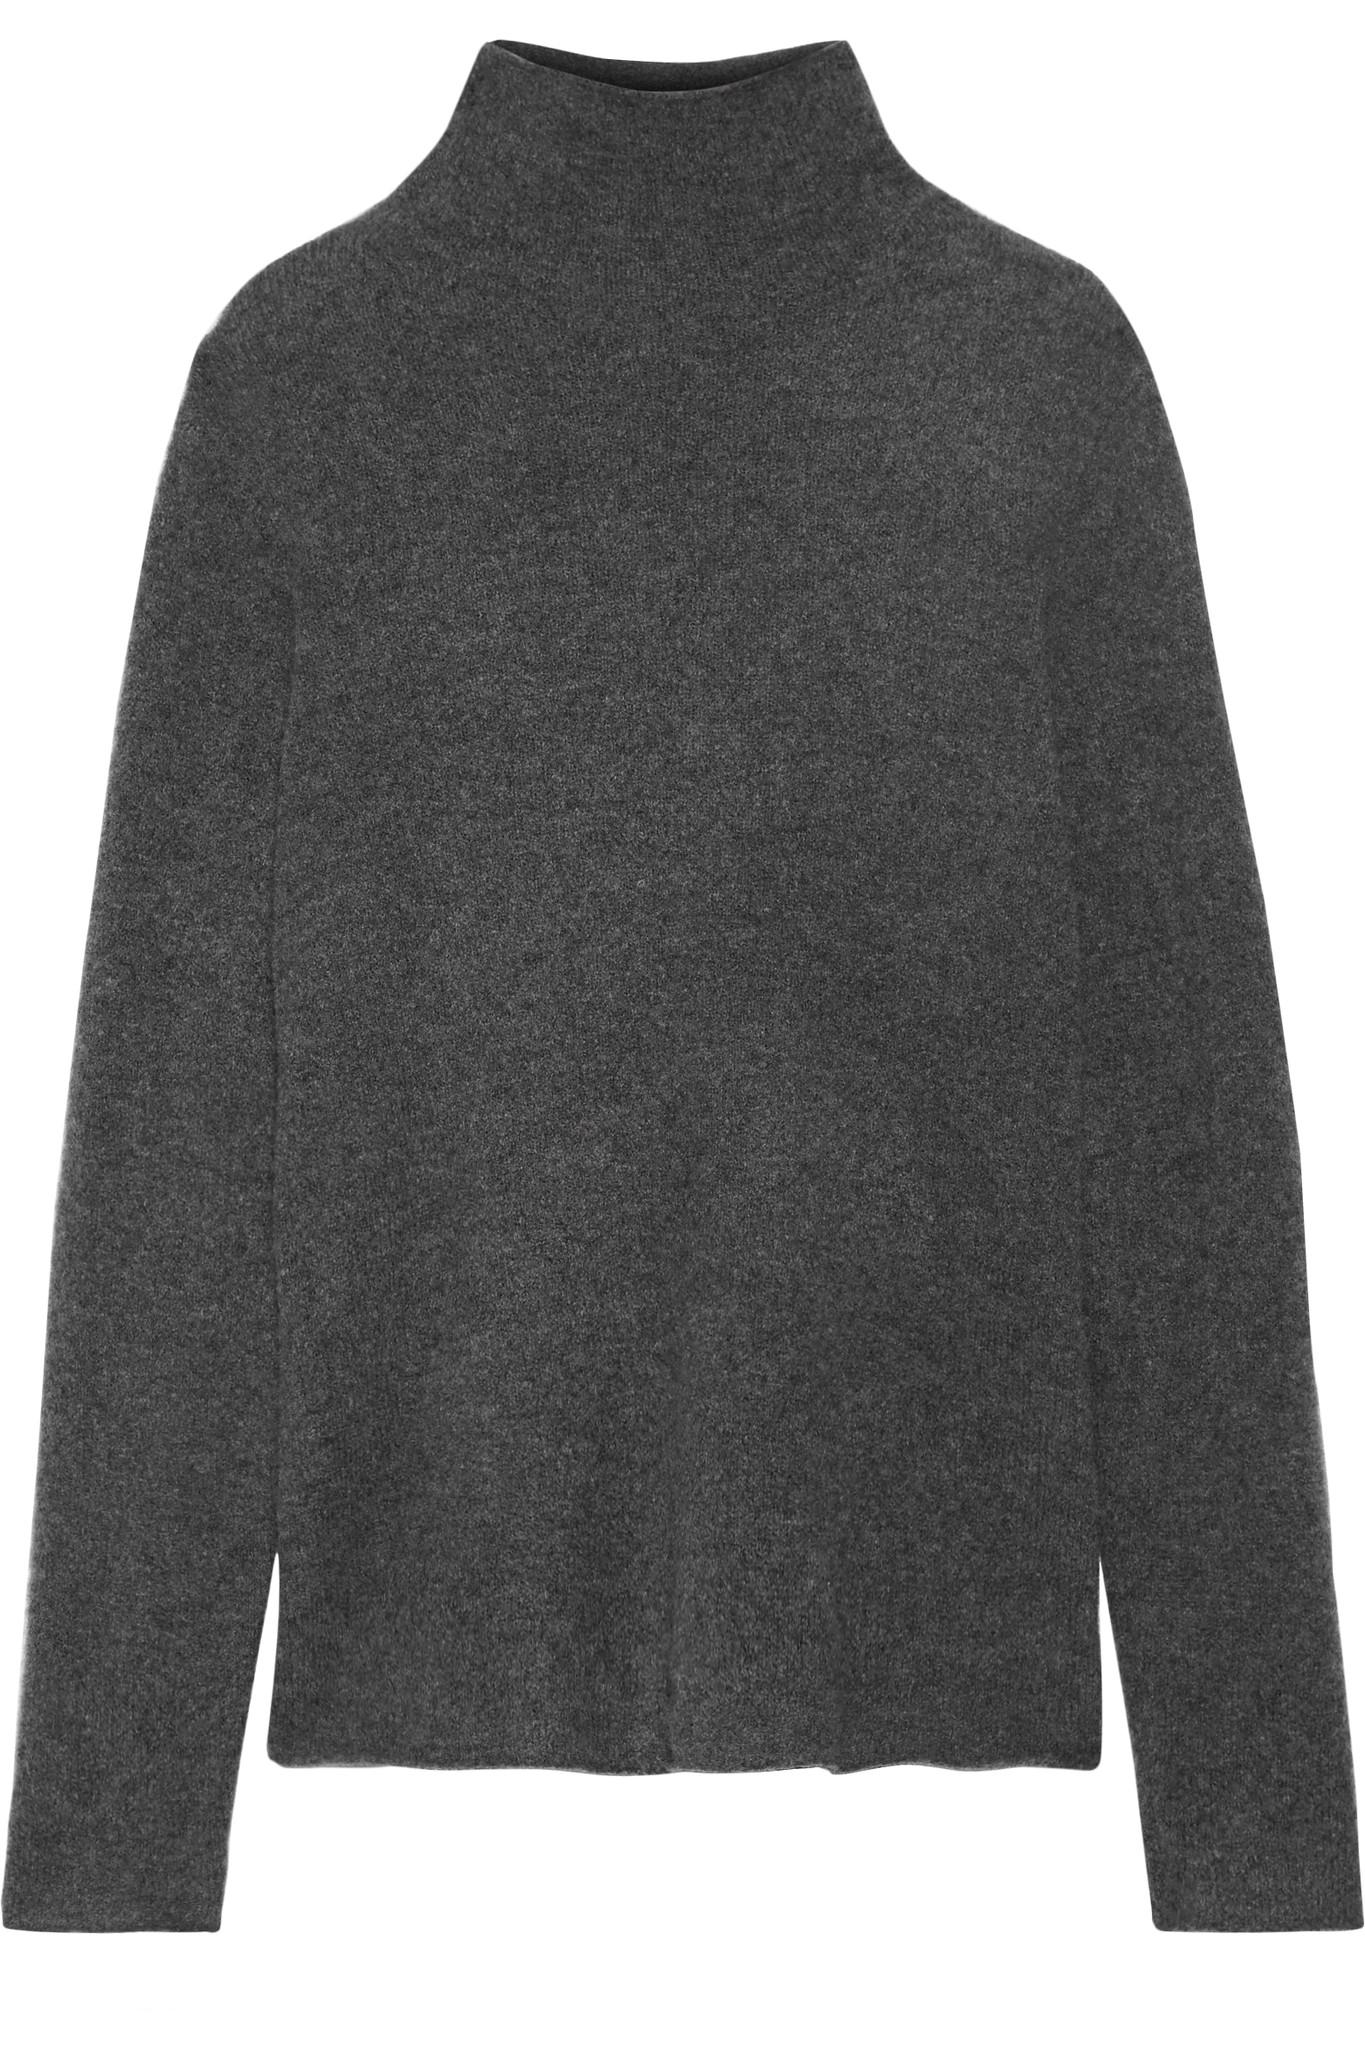 6df3abccaa James Perse Cashmere-blend Felt Turtleneck Sweater in Gray - Lyst